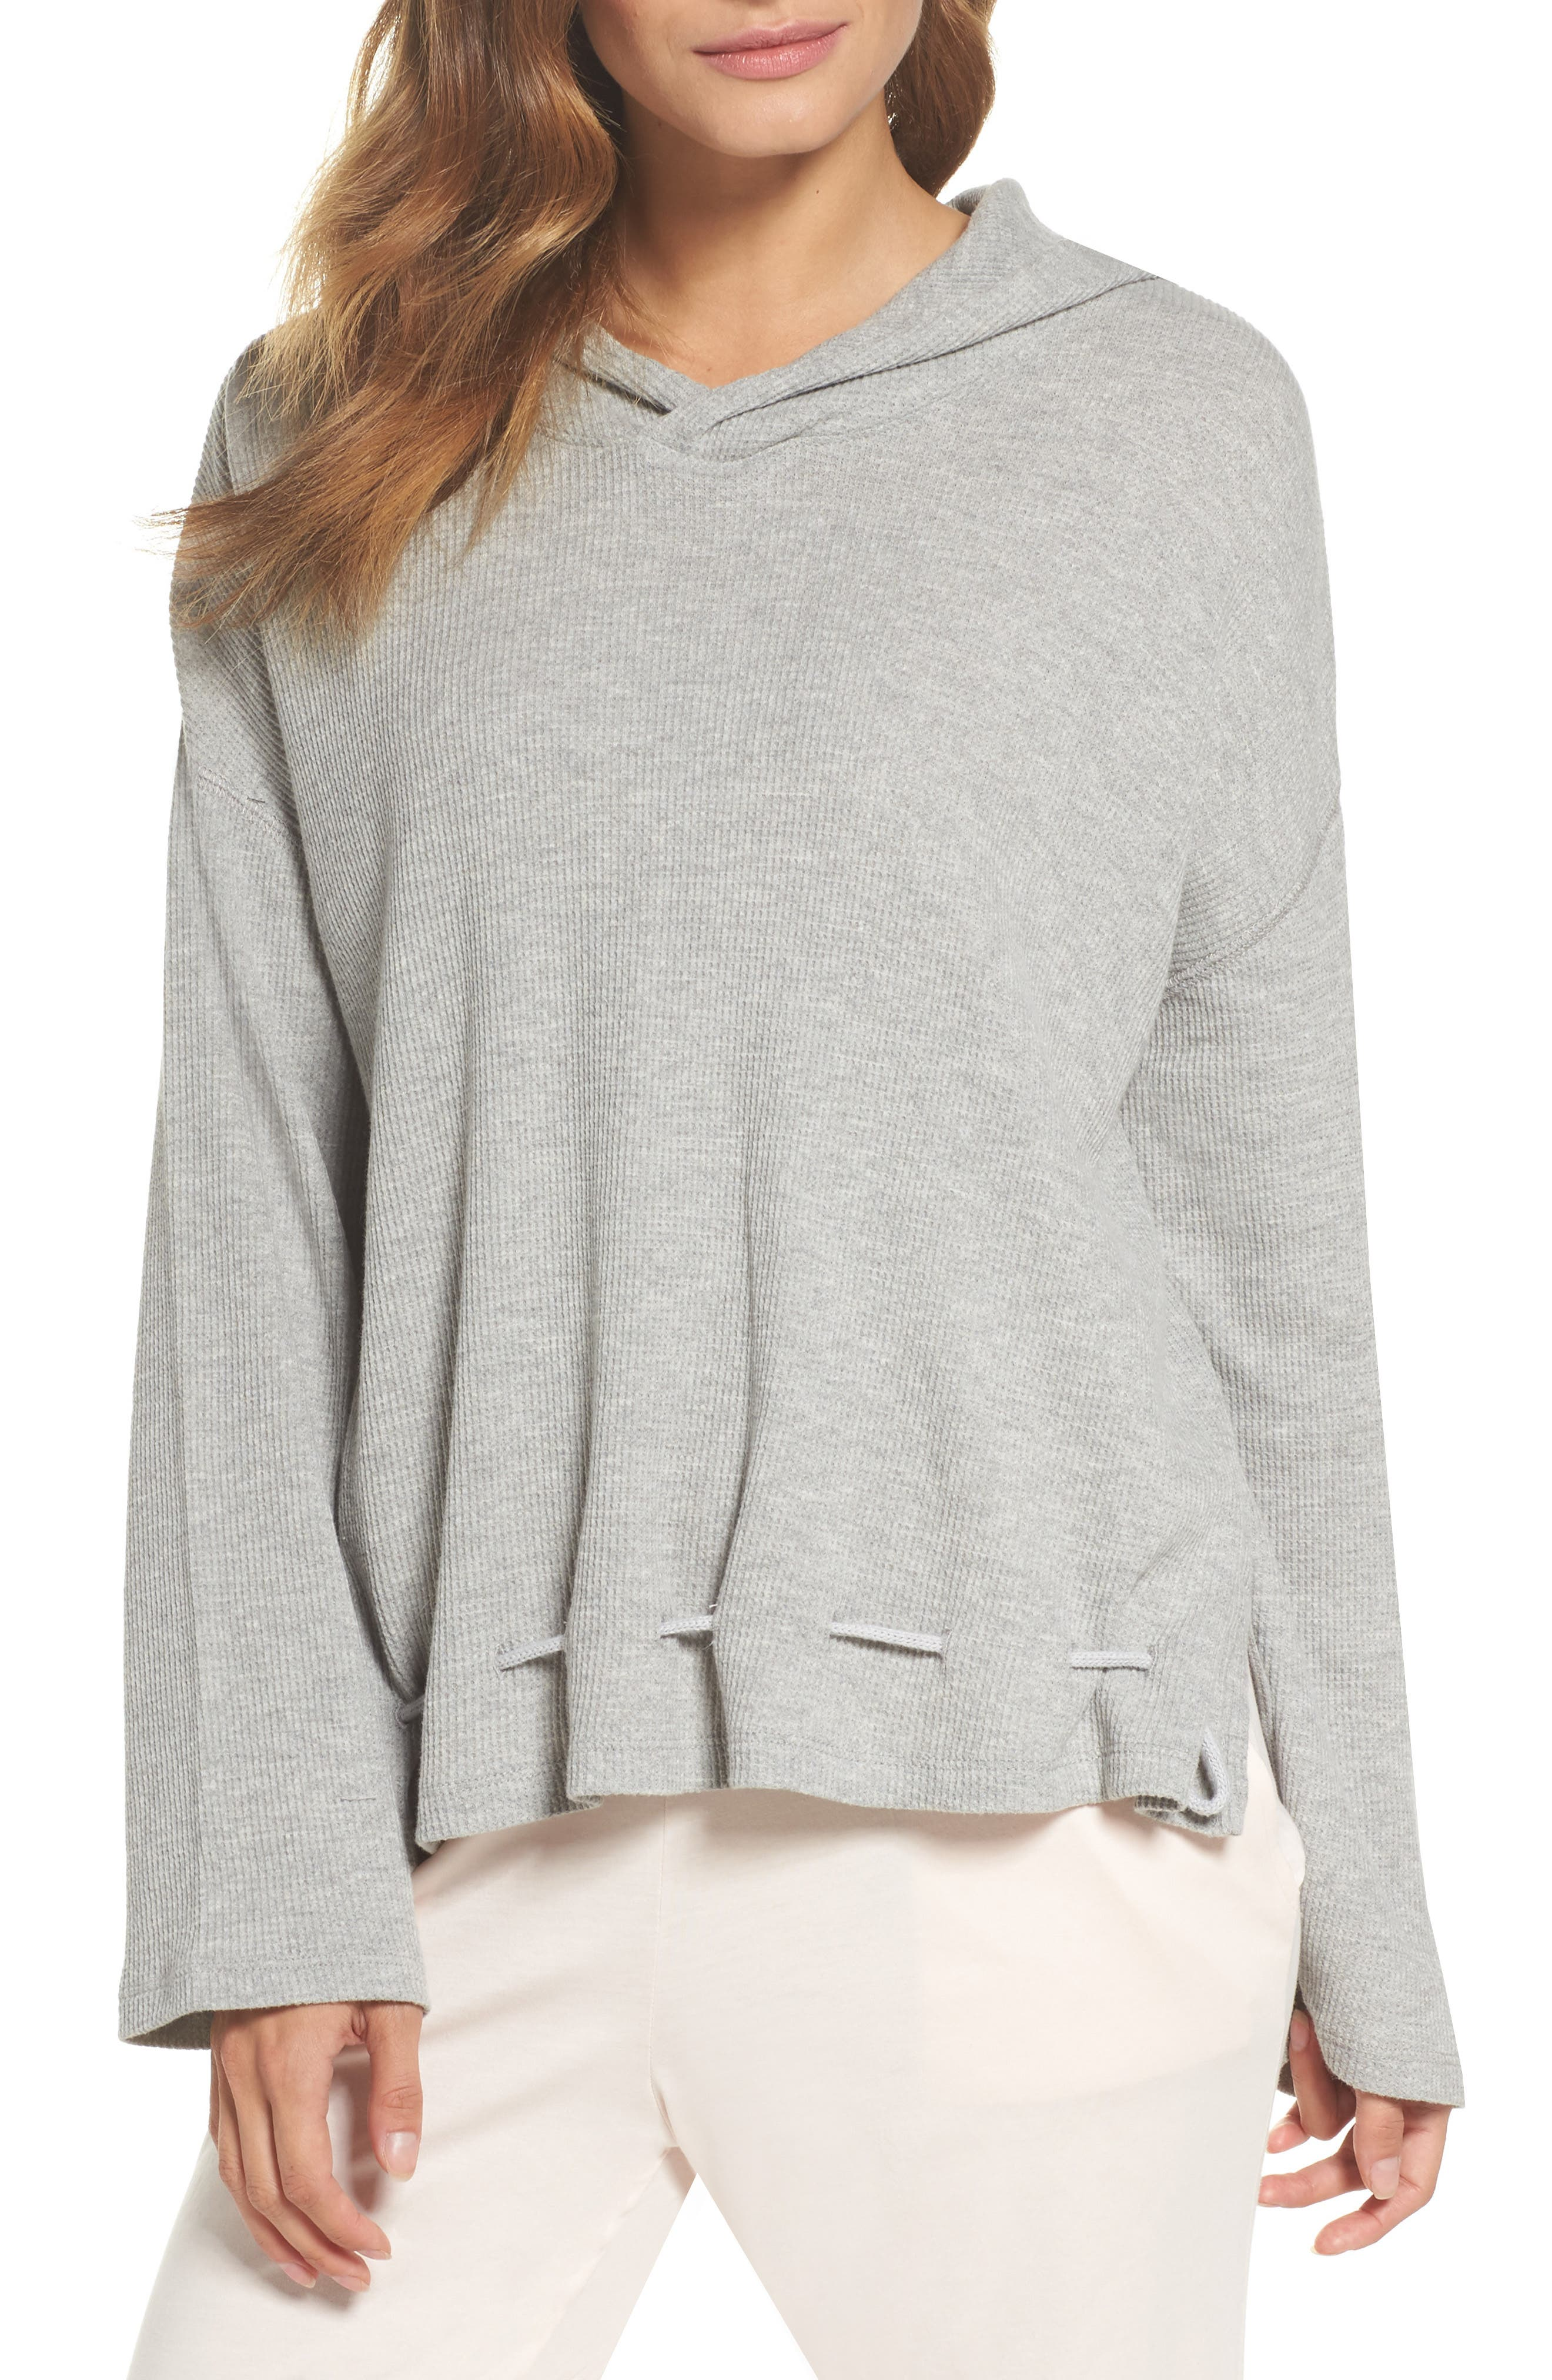 Thermal Hooded Top,                         Main,                         color, Heather Grey